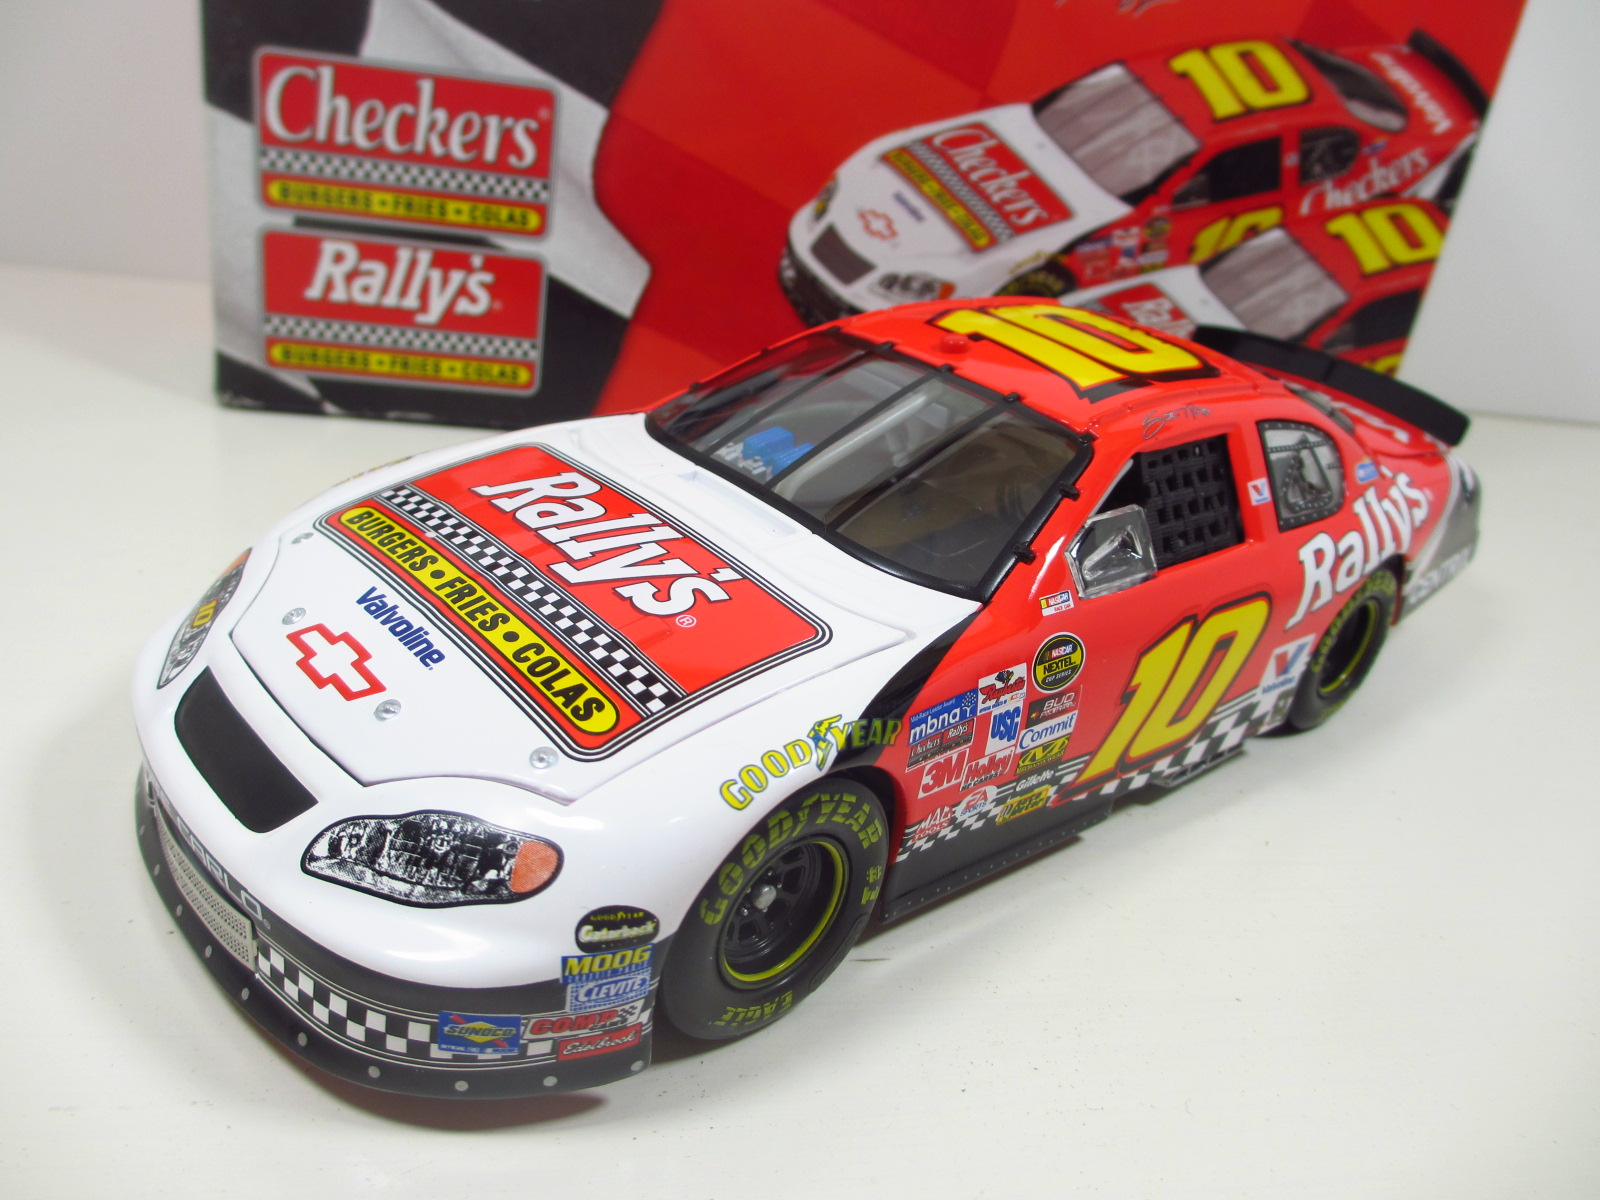 1/24 ACTION  2005 Scott Riggs #10 Rally's  Chevy Monte Carlo  24-113